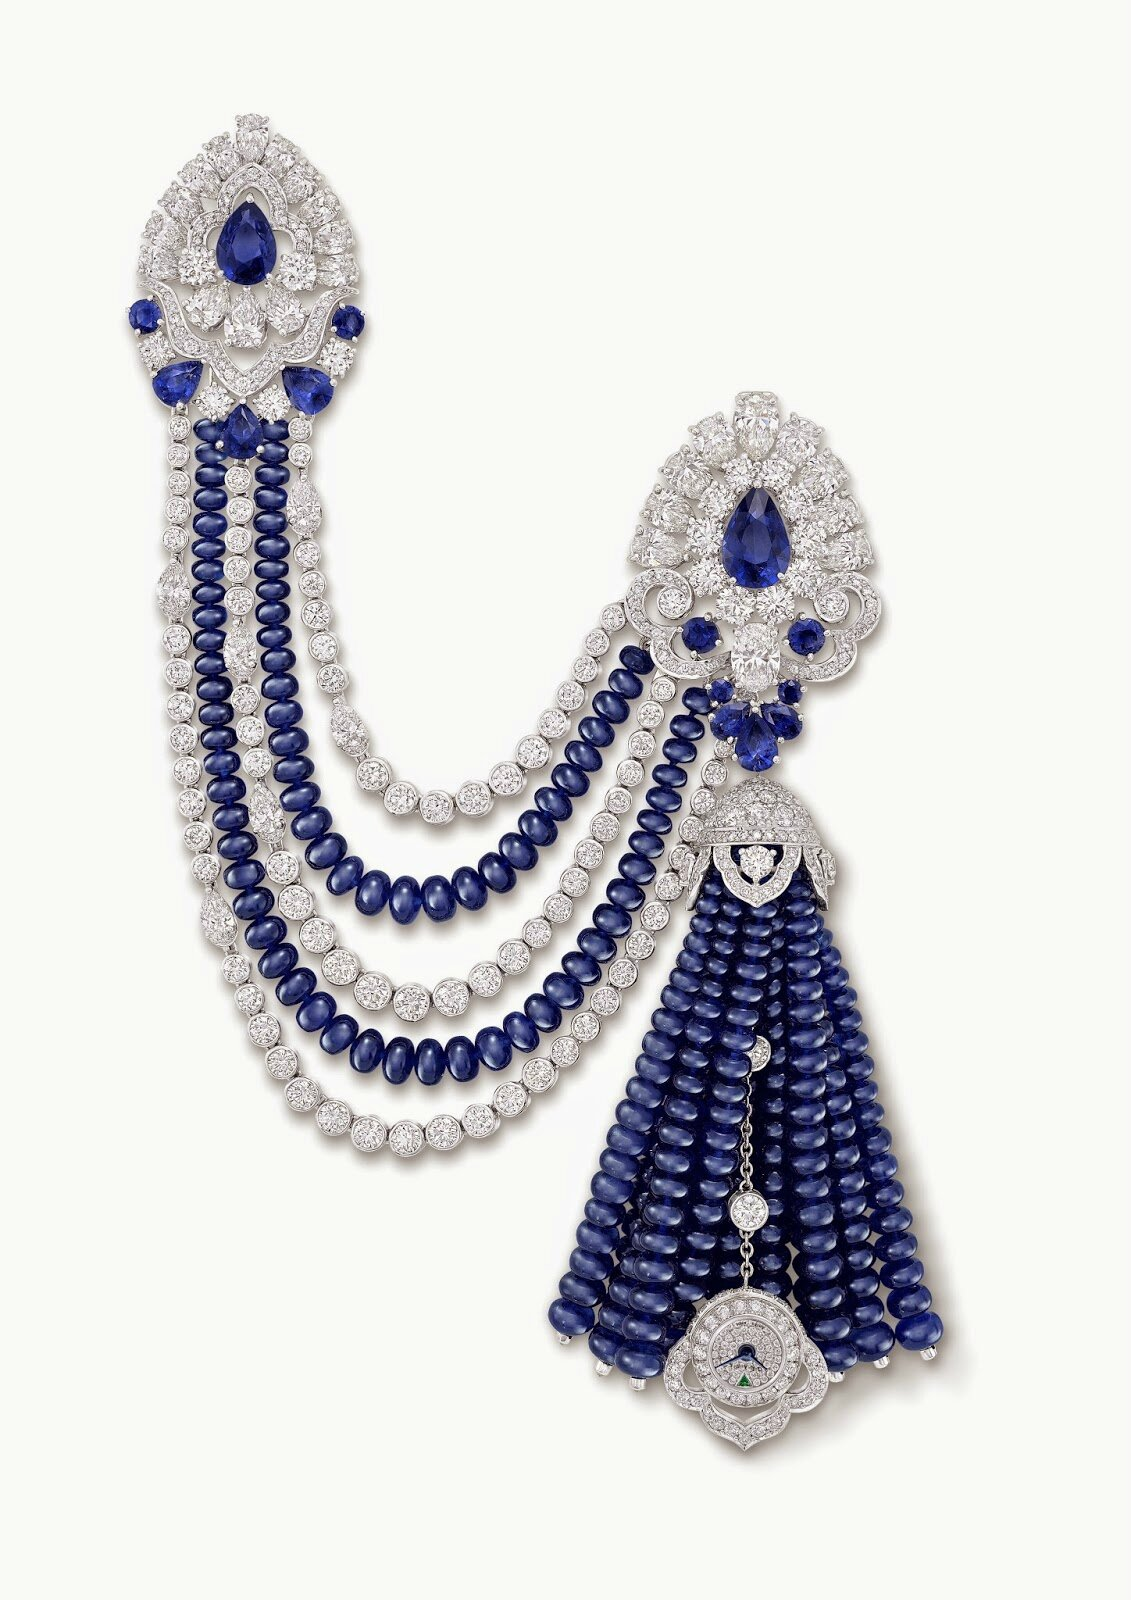 Graff Sapphire and Diamond Beaded Tassel Secret Watch for Baselworld 2015